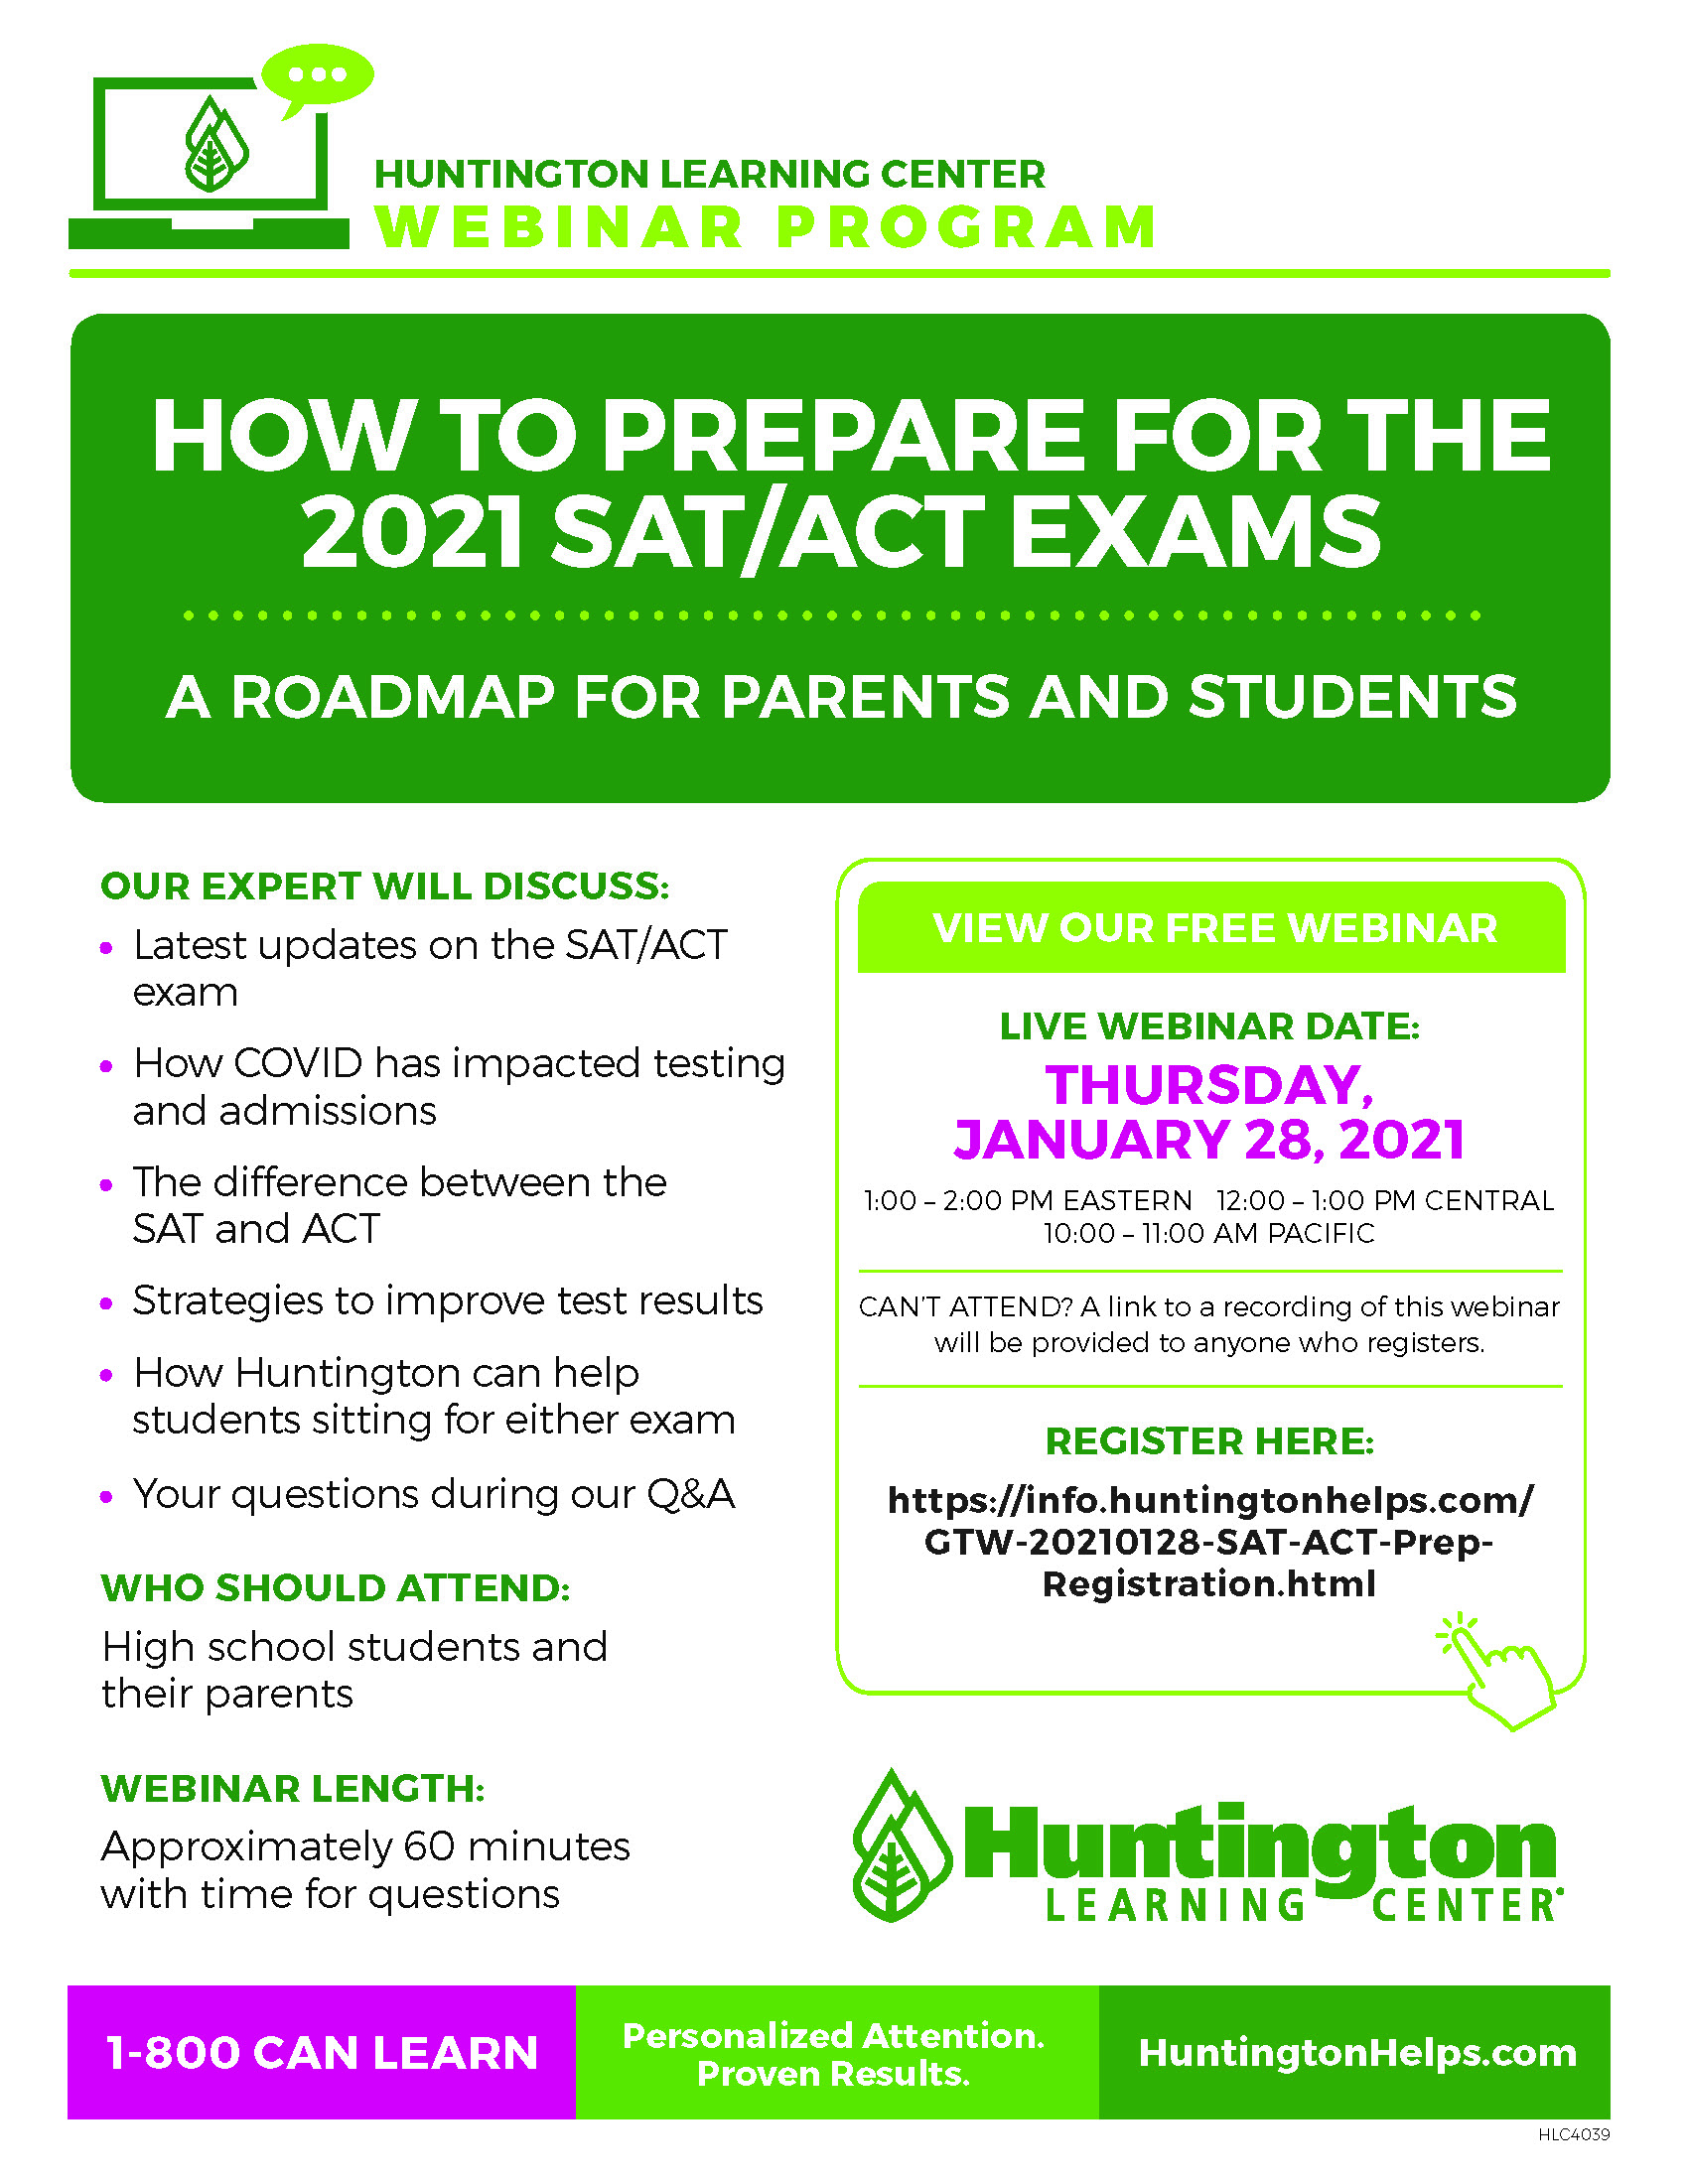 ONLINE How to Prepare for the 2021 SAT/ACT Exams A roadmap for parents and high school students at Huntington Learning Center